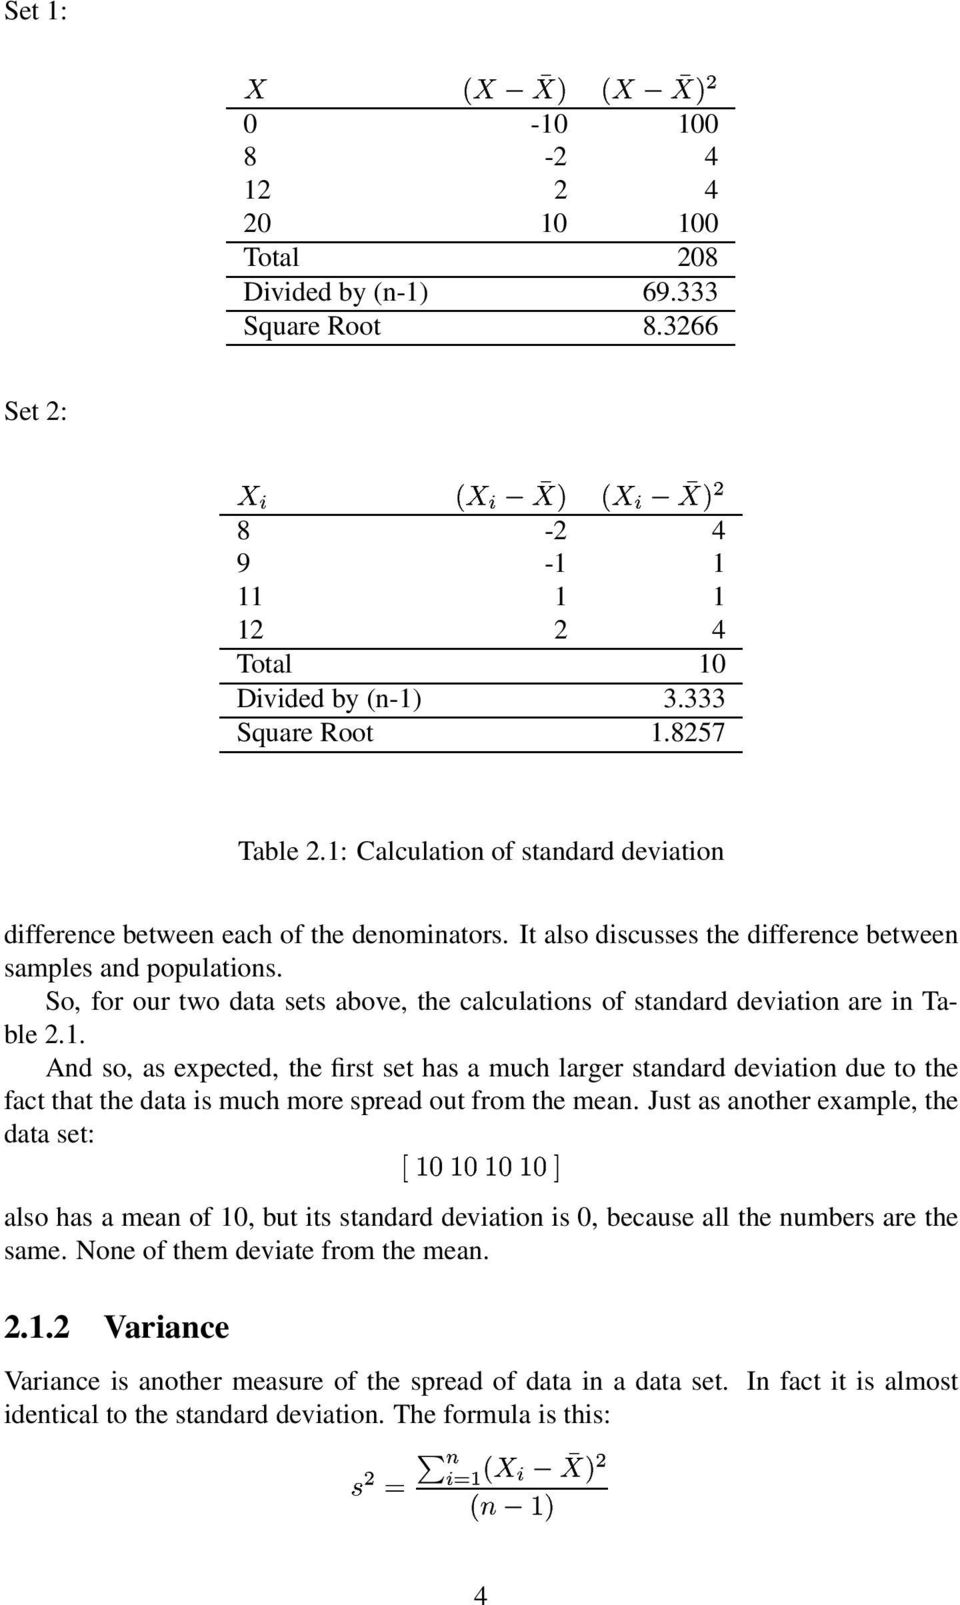 So, for our two data sets above, the calculations of standard deviation are in Table 2.1.